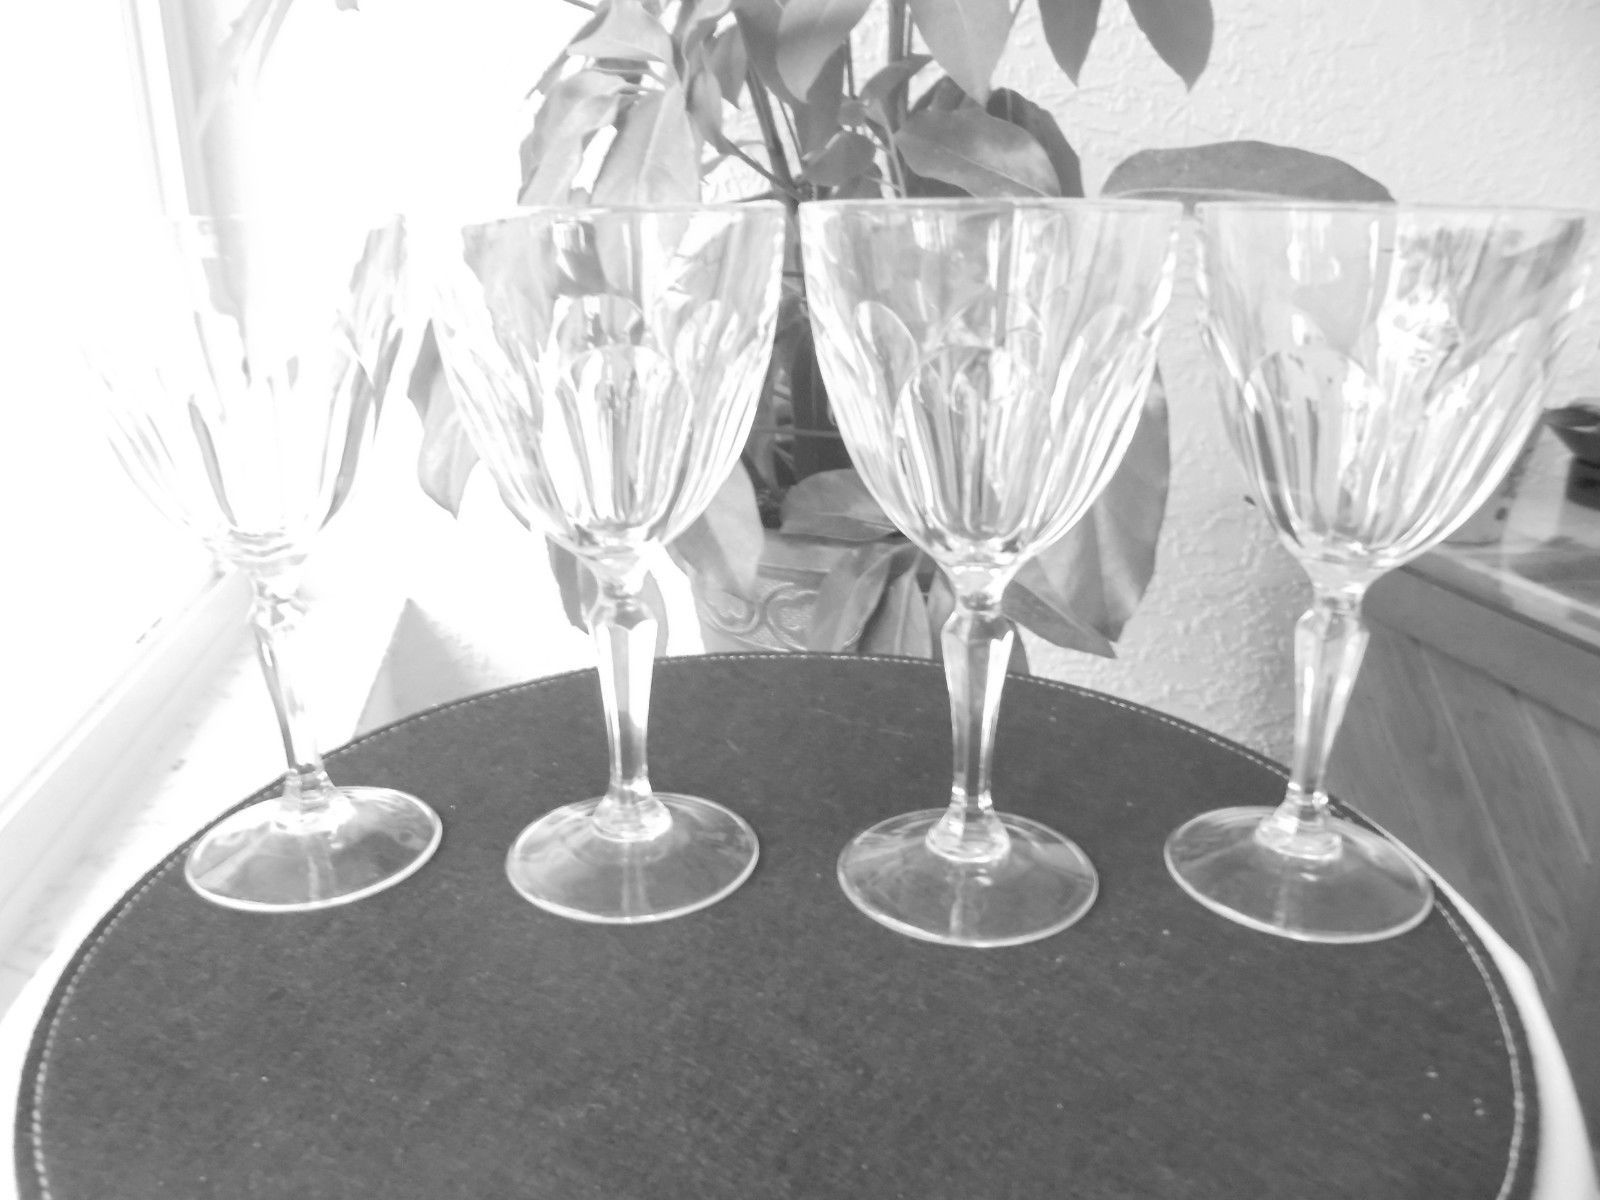 """Set of 4 Cris D'Arques Washington Pattern Water Goblets 7 1/4"""" Tall - $39.59"""